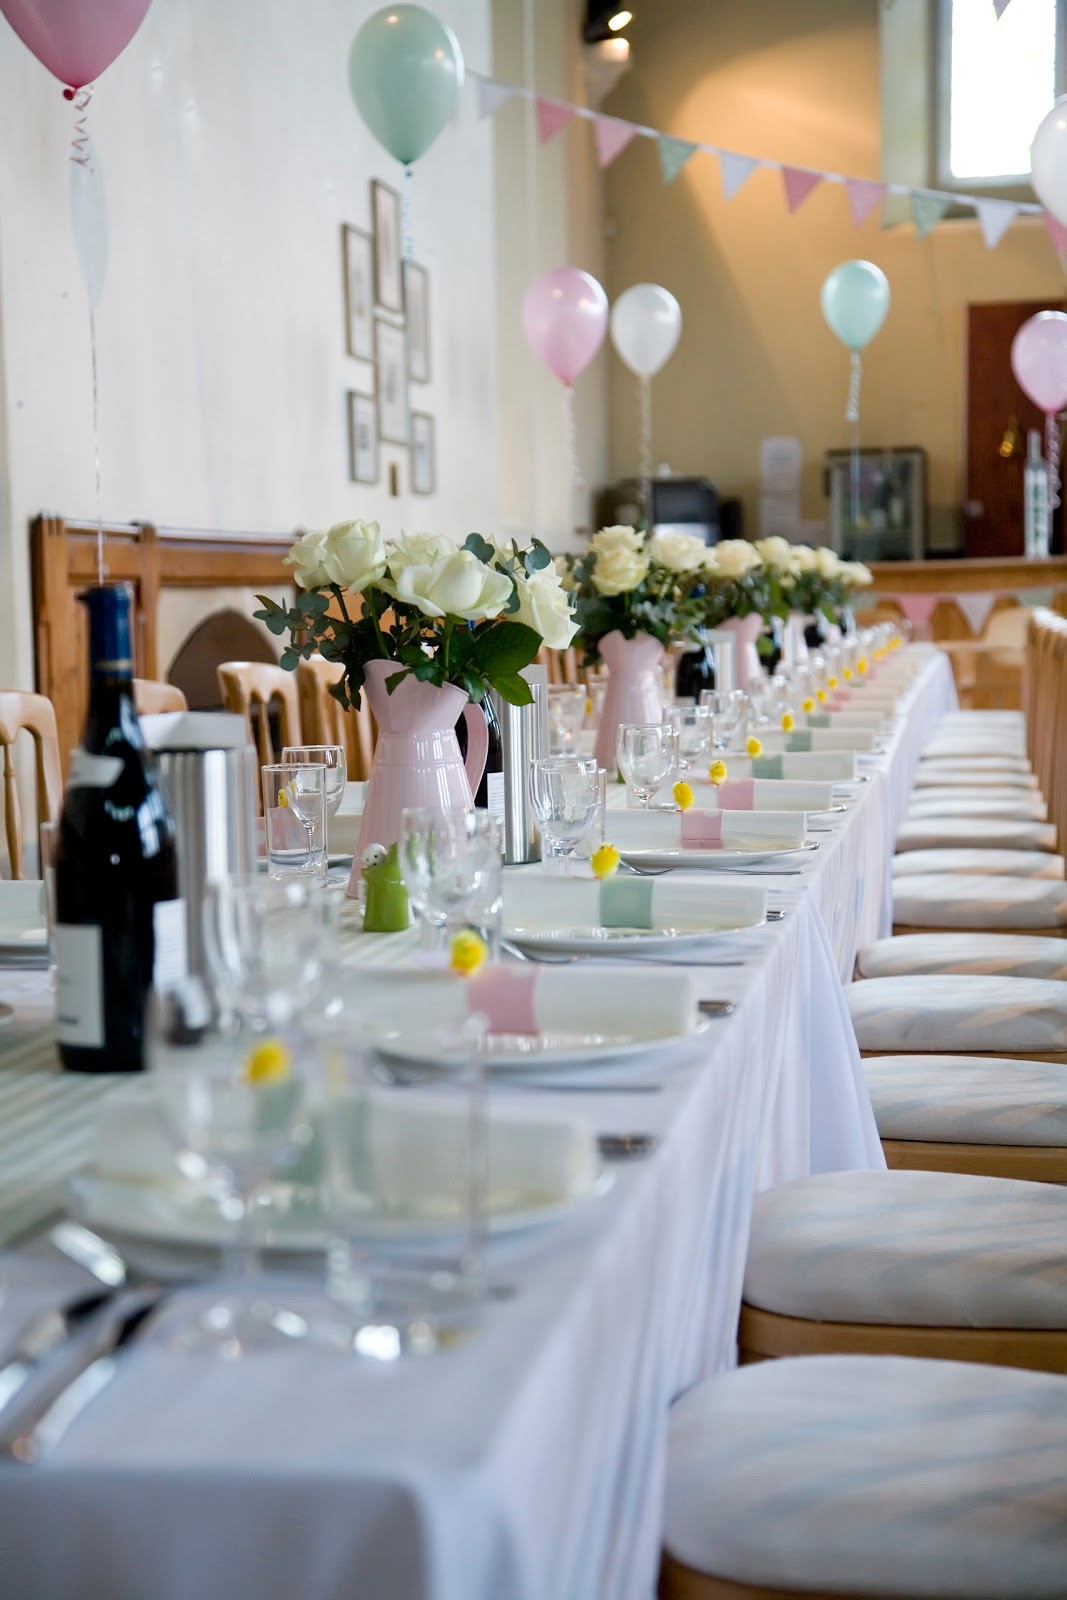 Bristol wedding news venue spotlight village halls village halls are no longer just the meeting place for the local brownie group more and more couples are hiring their local village hall and realising that solutioingenieria Gallery